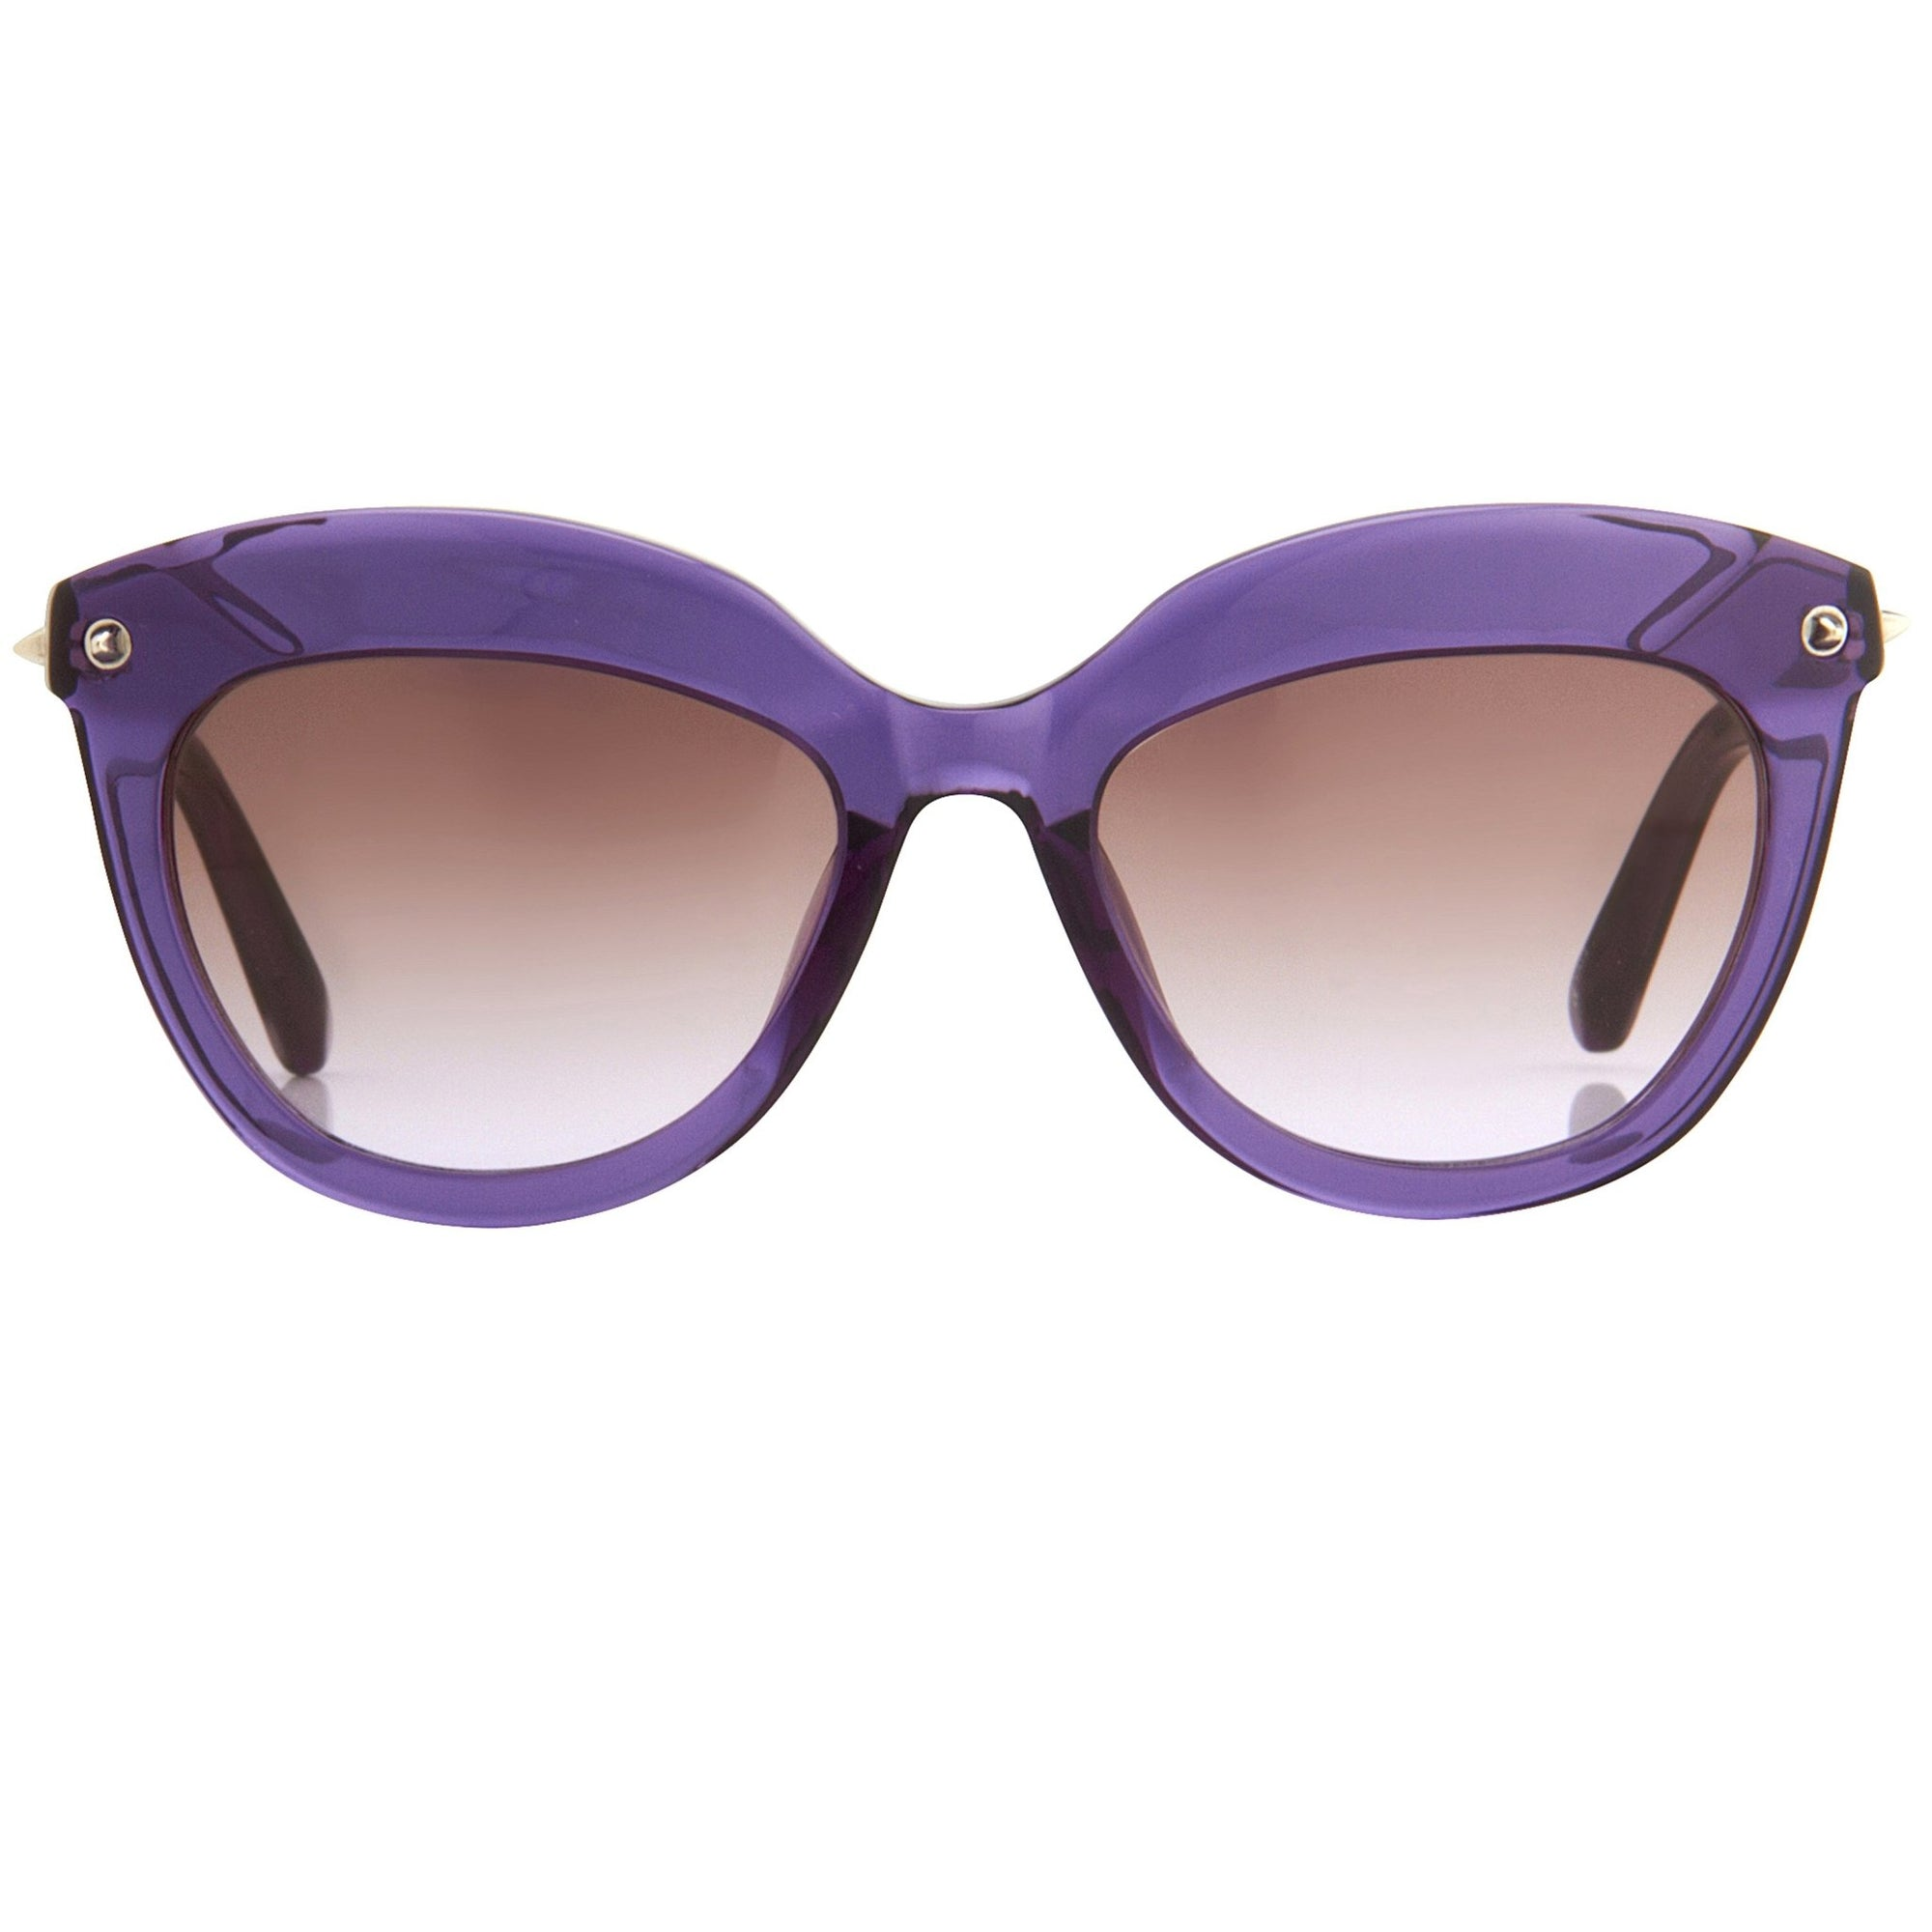 Agent Provocateur Sunglasses Cat Eye Purple and Brown Graduated Lenses - AP45C5SUN - Watches & Crystals